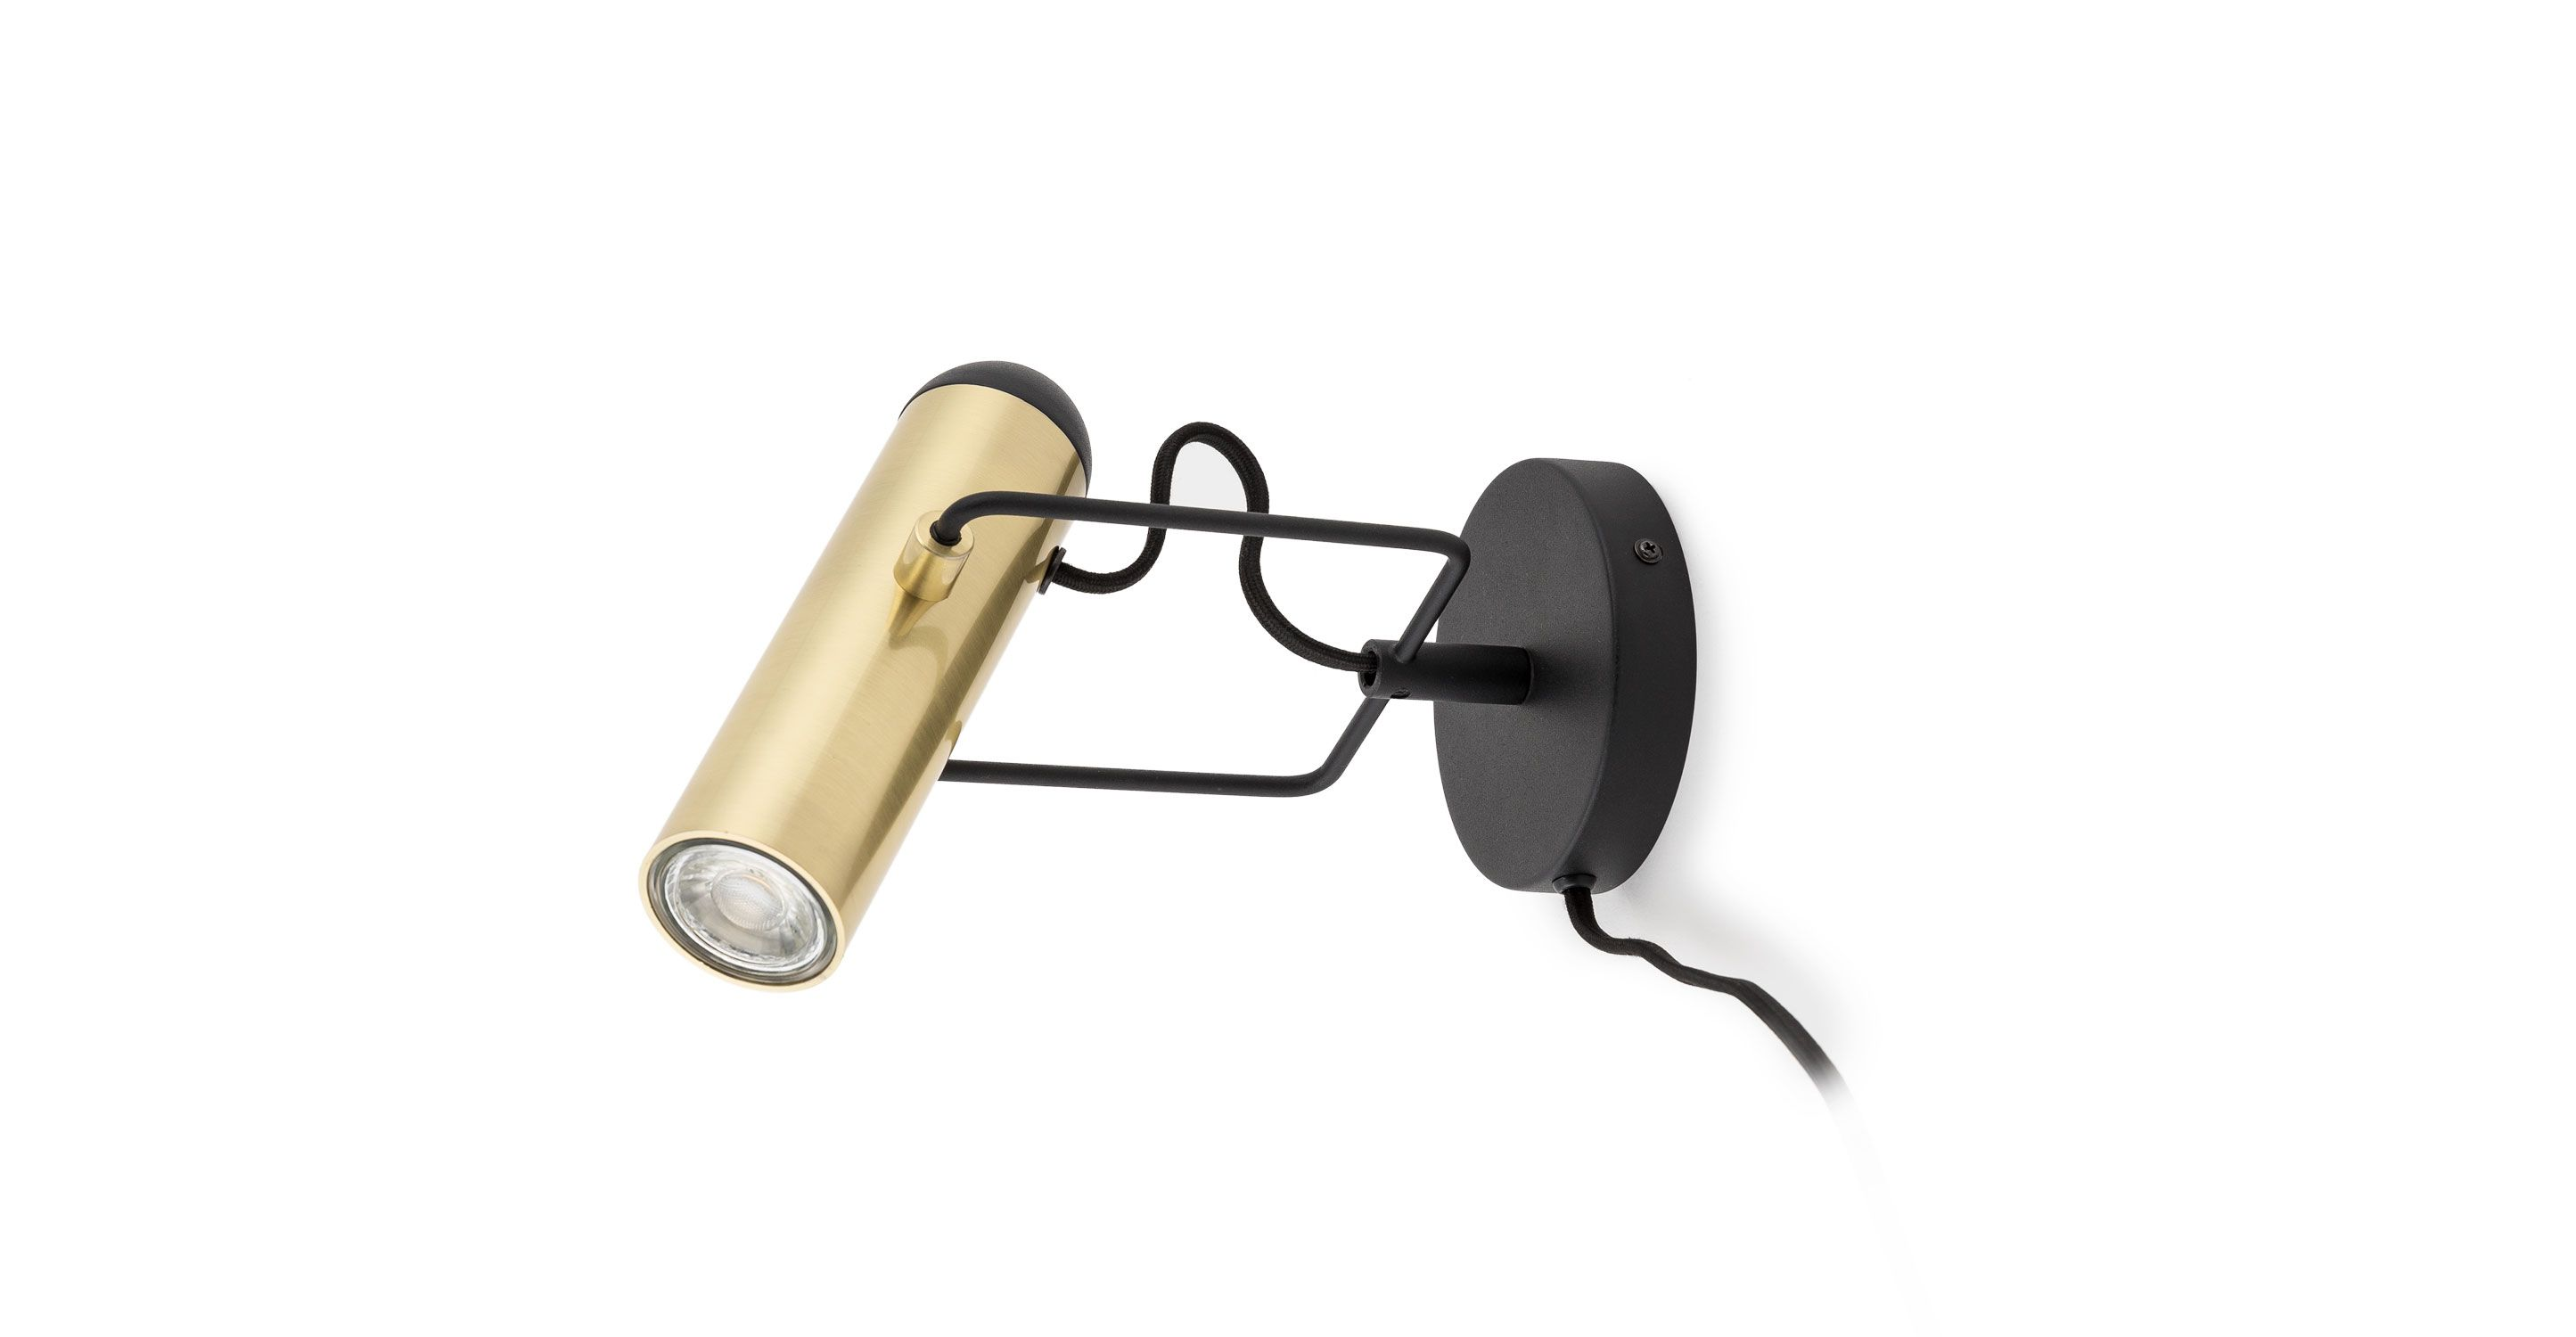 Brass Sconce Lamp With Plug In Cord